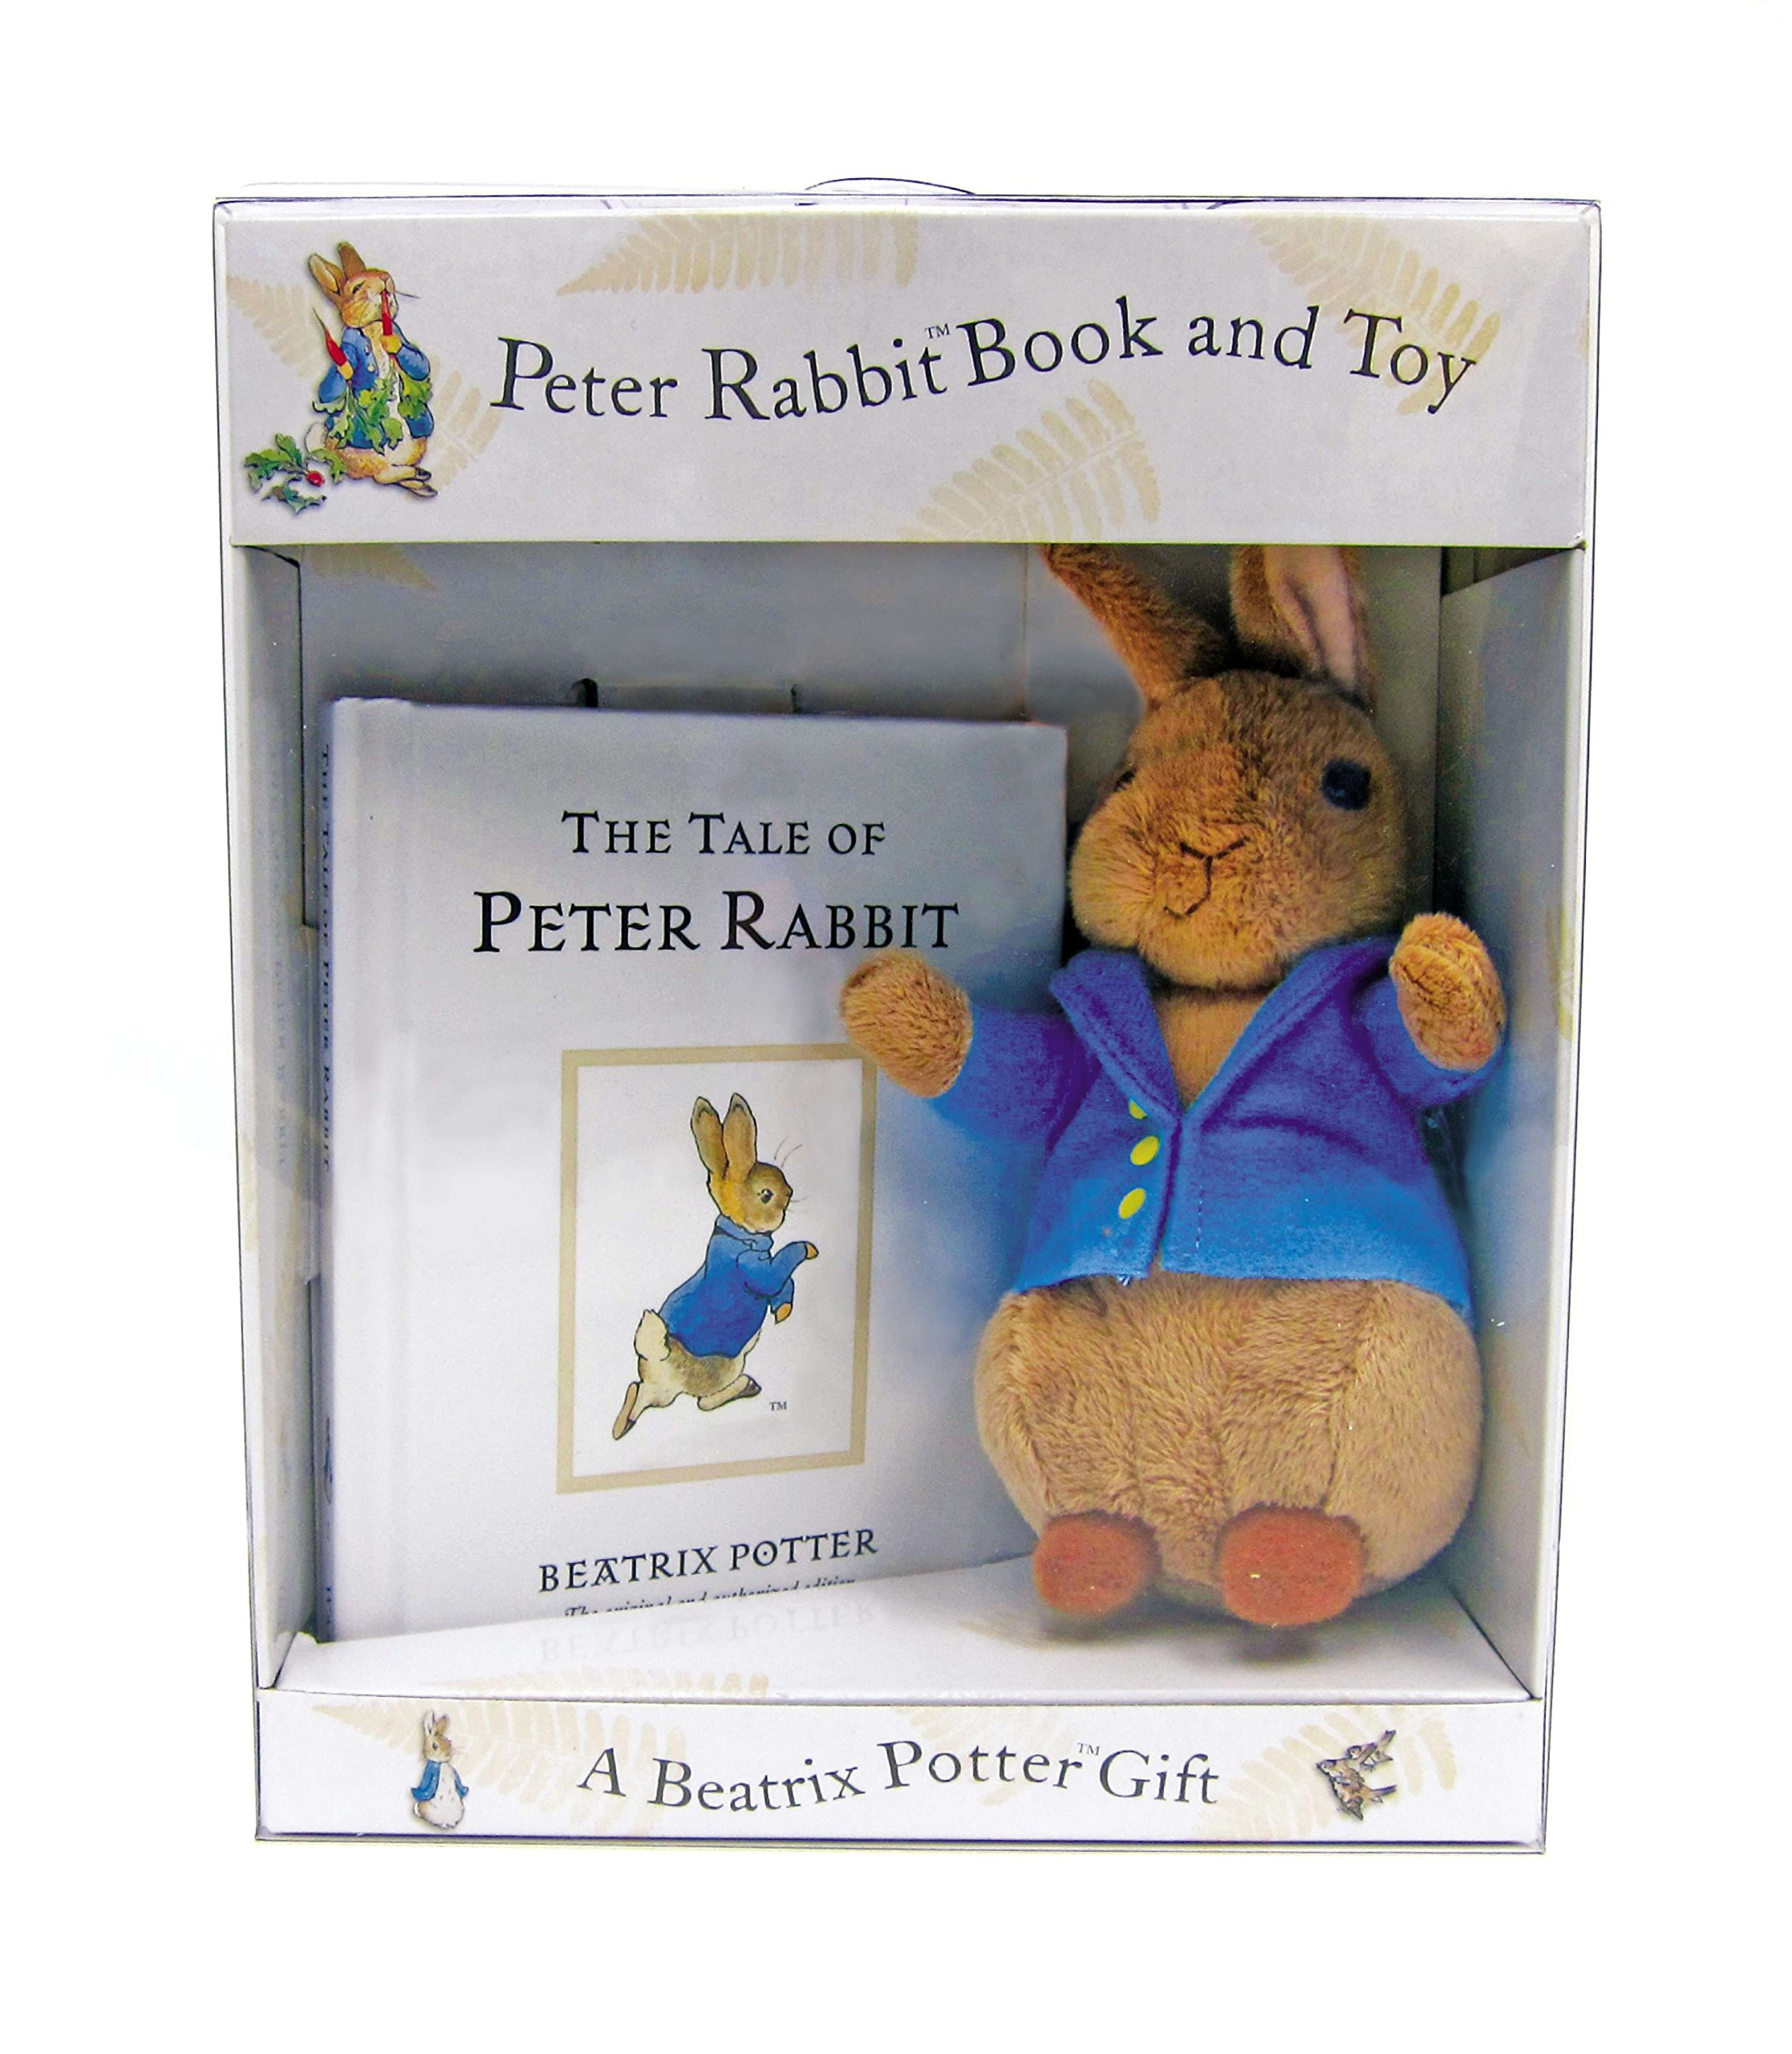 Peter Rabbit Book and Toy ONLY...